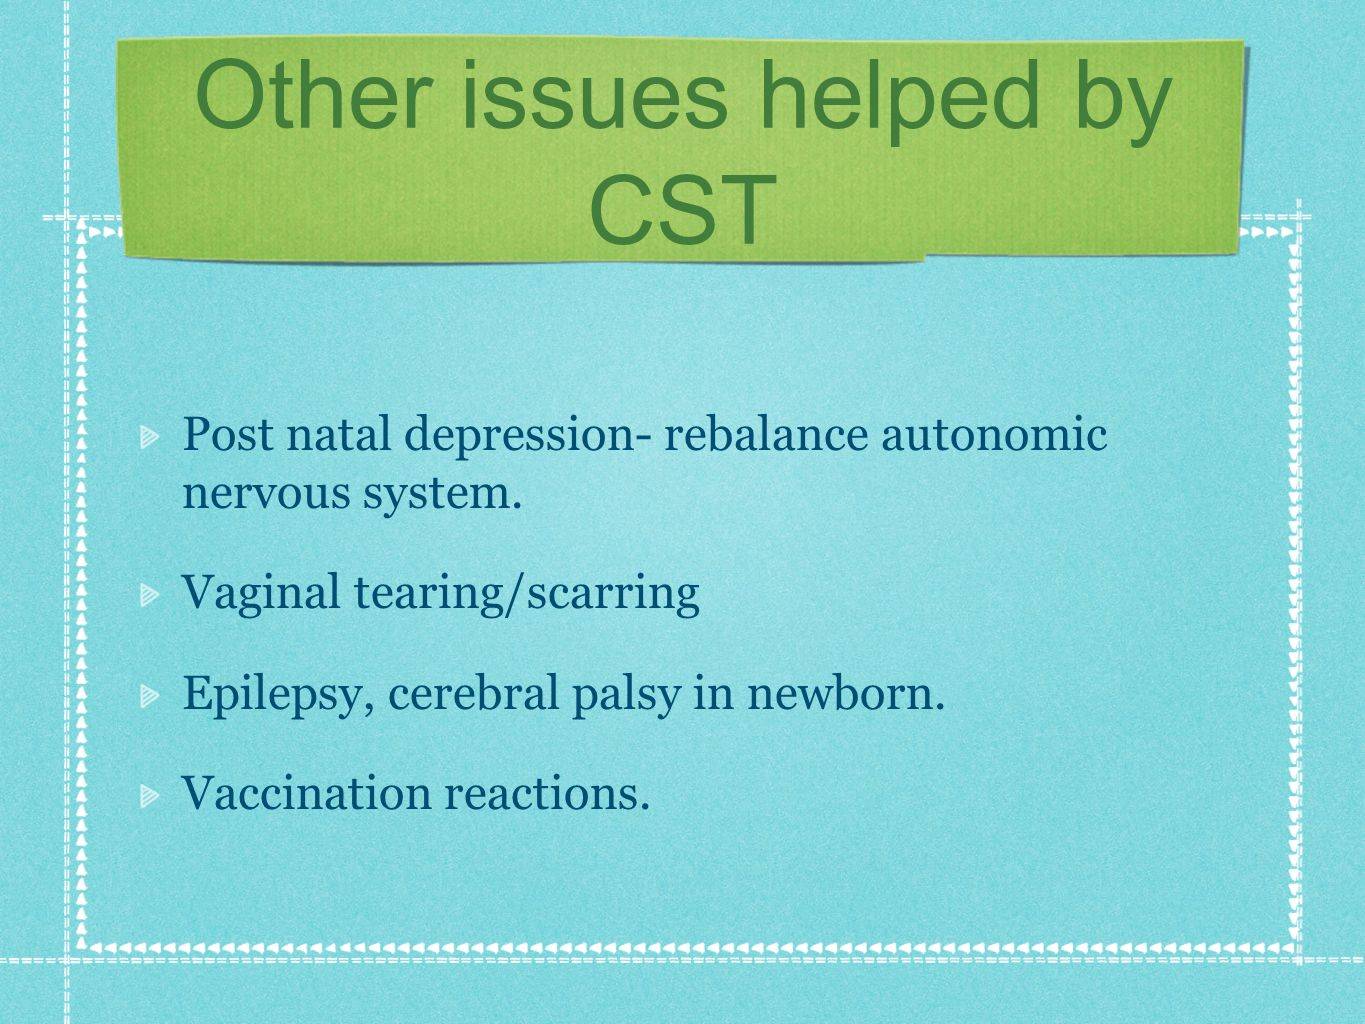 Other issues helped by CST Post natal depression- rebalance autonomic nervous system. Vaginal tearing/scarring Epilepsy, cerebral palsy in newborn. Va